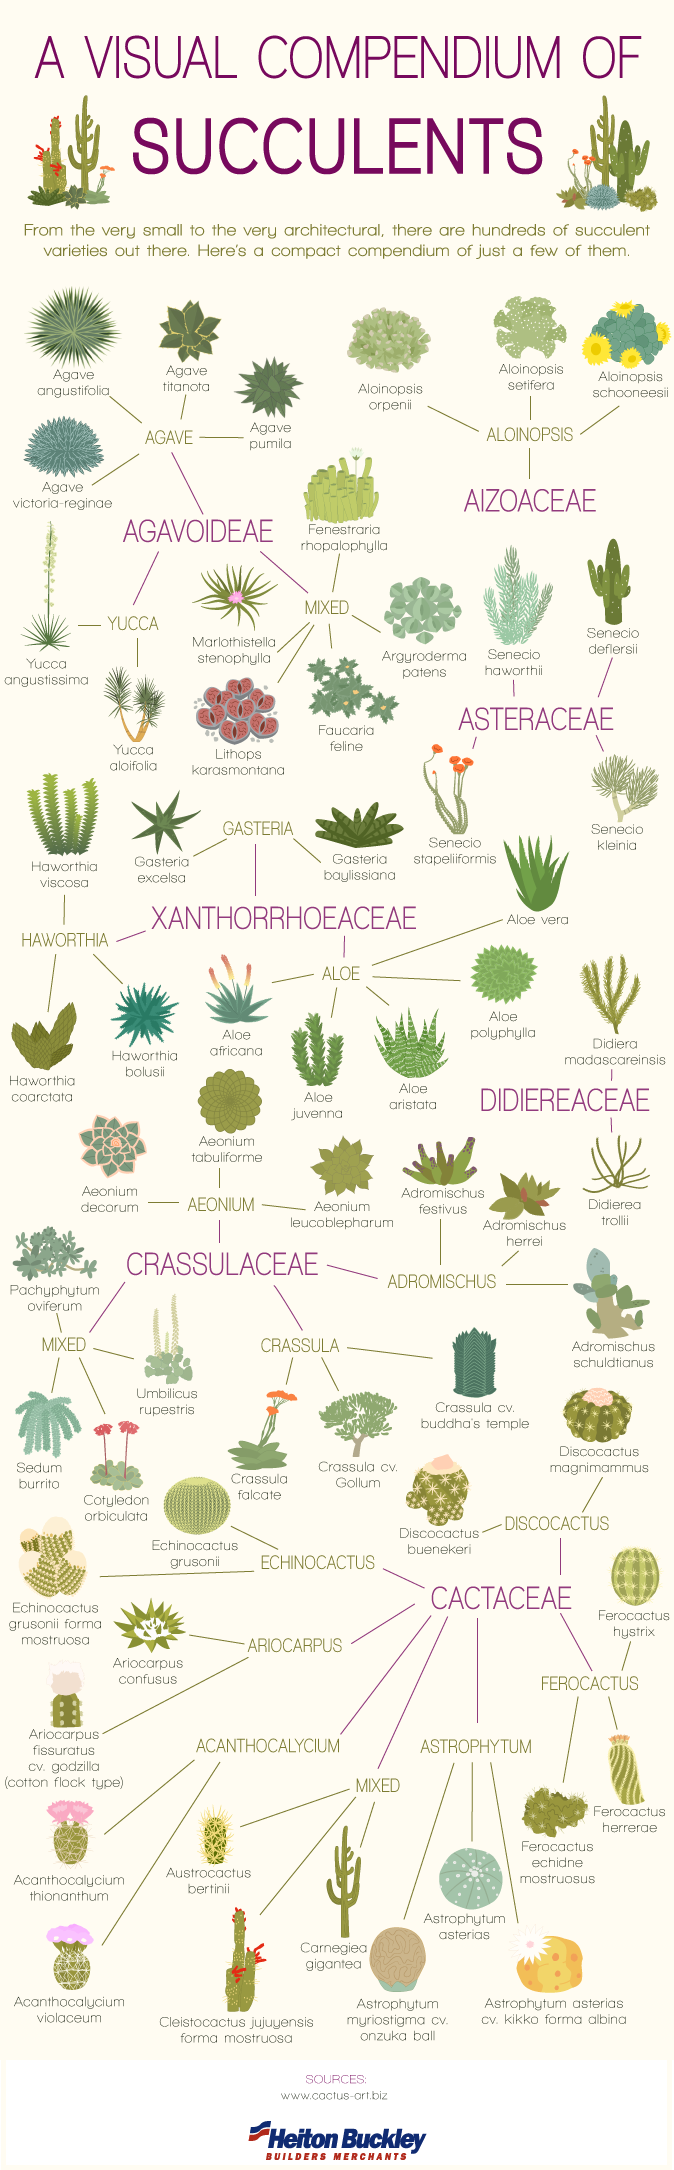 Visual-Comendium-of-Succulents-V2